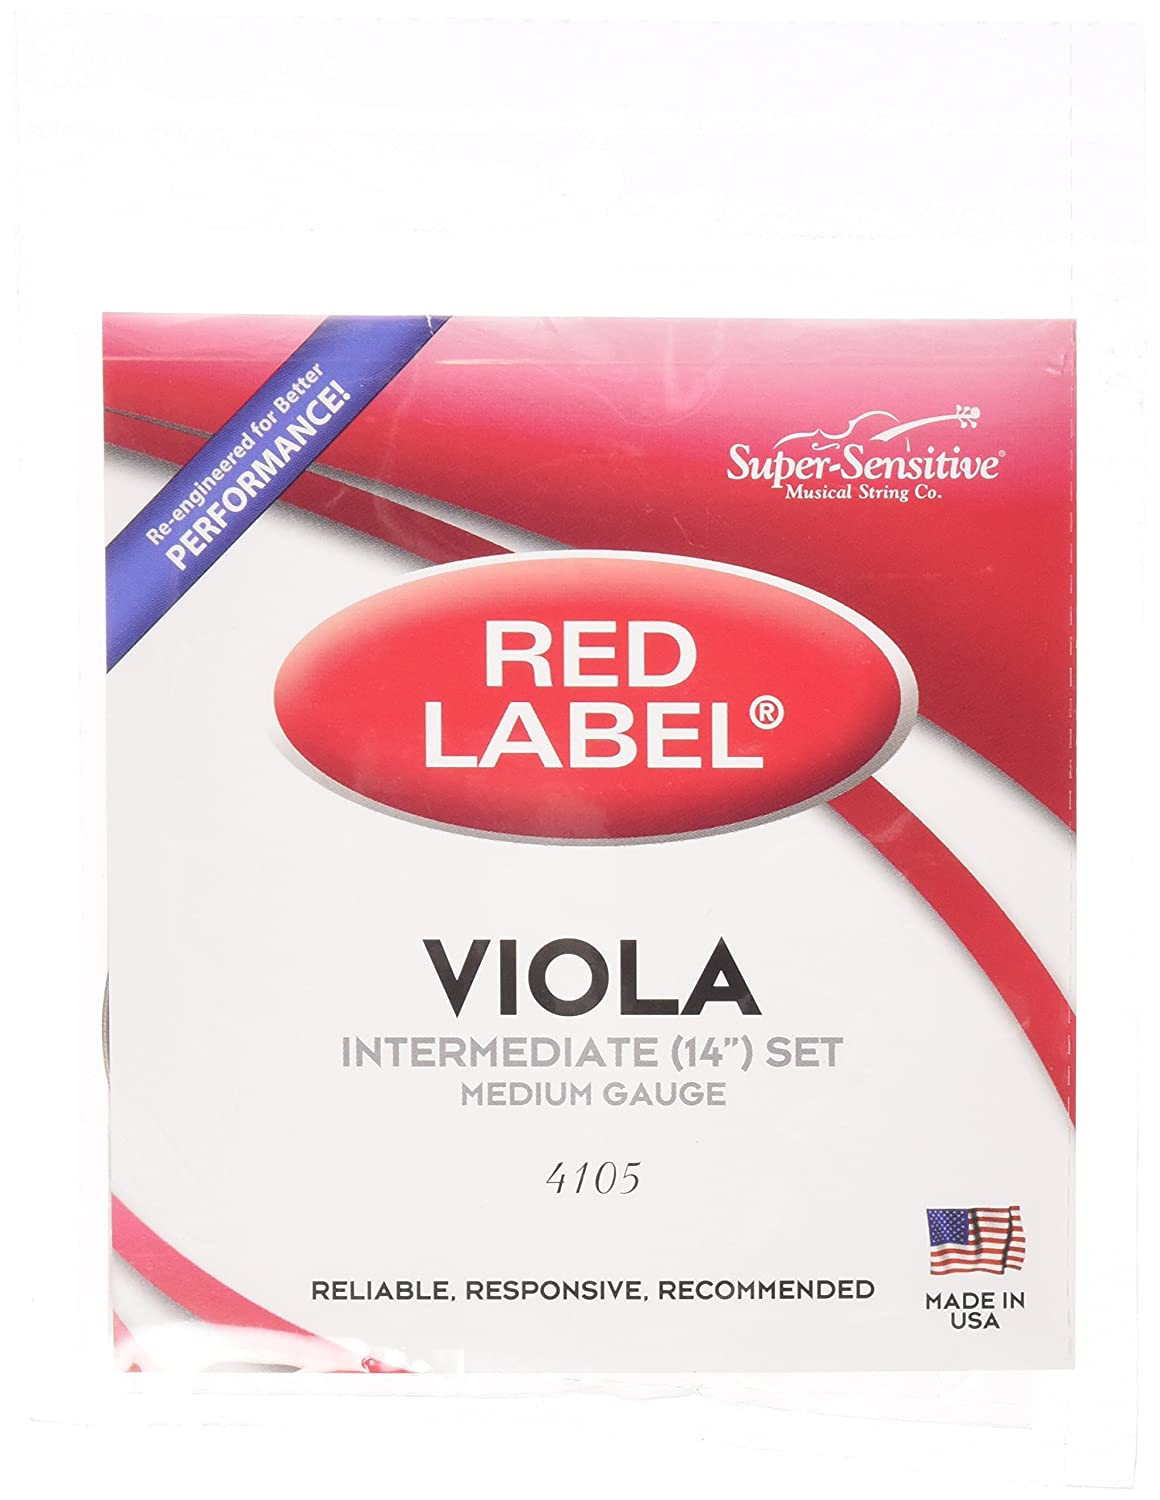 Super-Sensitive 4105 Red Label Full Core Intermediate 14-Inch Viola Strings, Set of 4, Medium